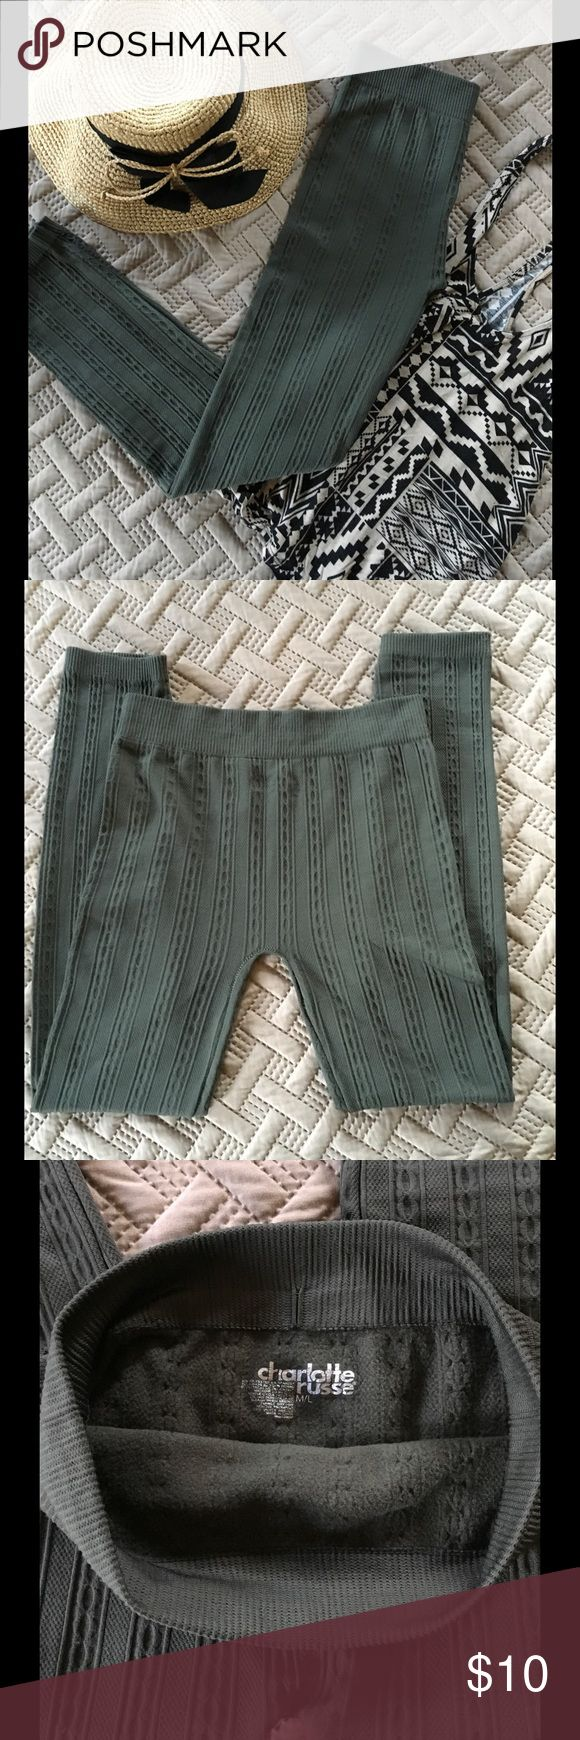 Olive Green Fleece Leggings High Waist New No Tags Olive green fleece leggings, super comfy, warm and soft. Size fits M/L. Material is polyester and spandex machine washable LMK if you have any questions. Price is Firm on this item. Charlotte Russe Pants Leggings